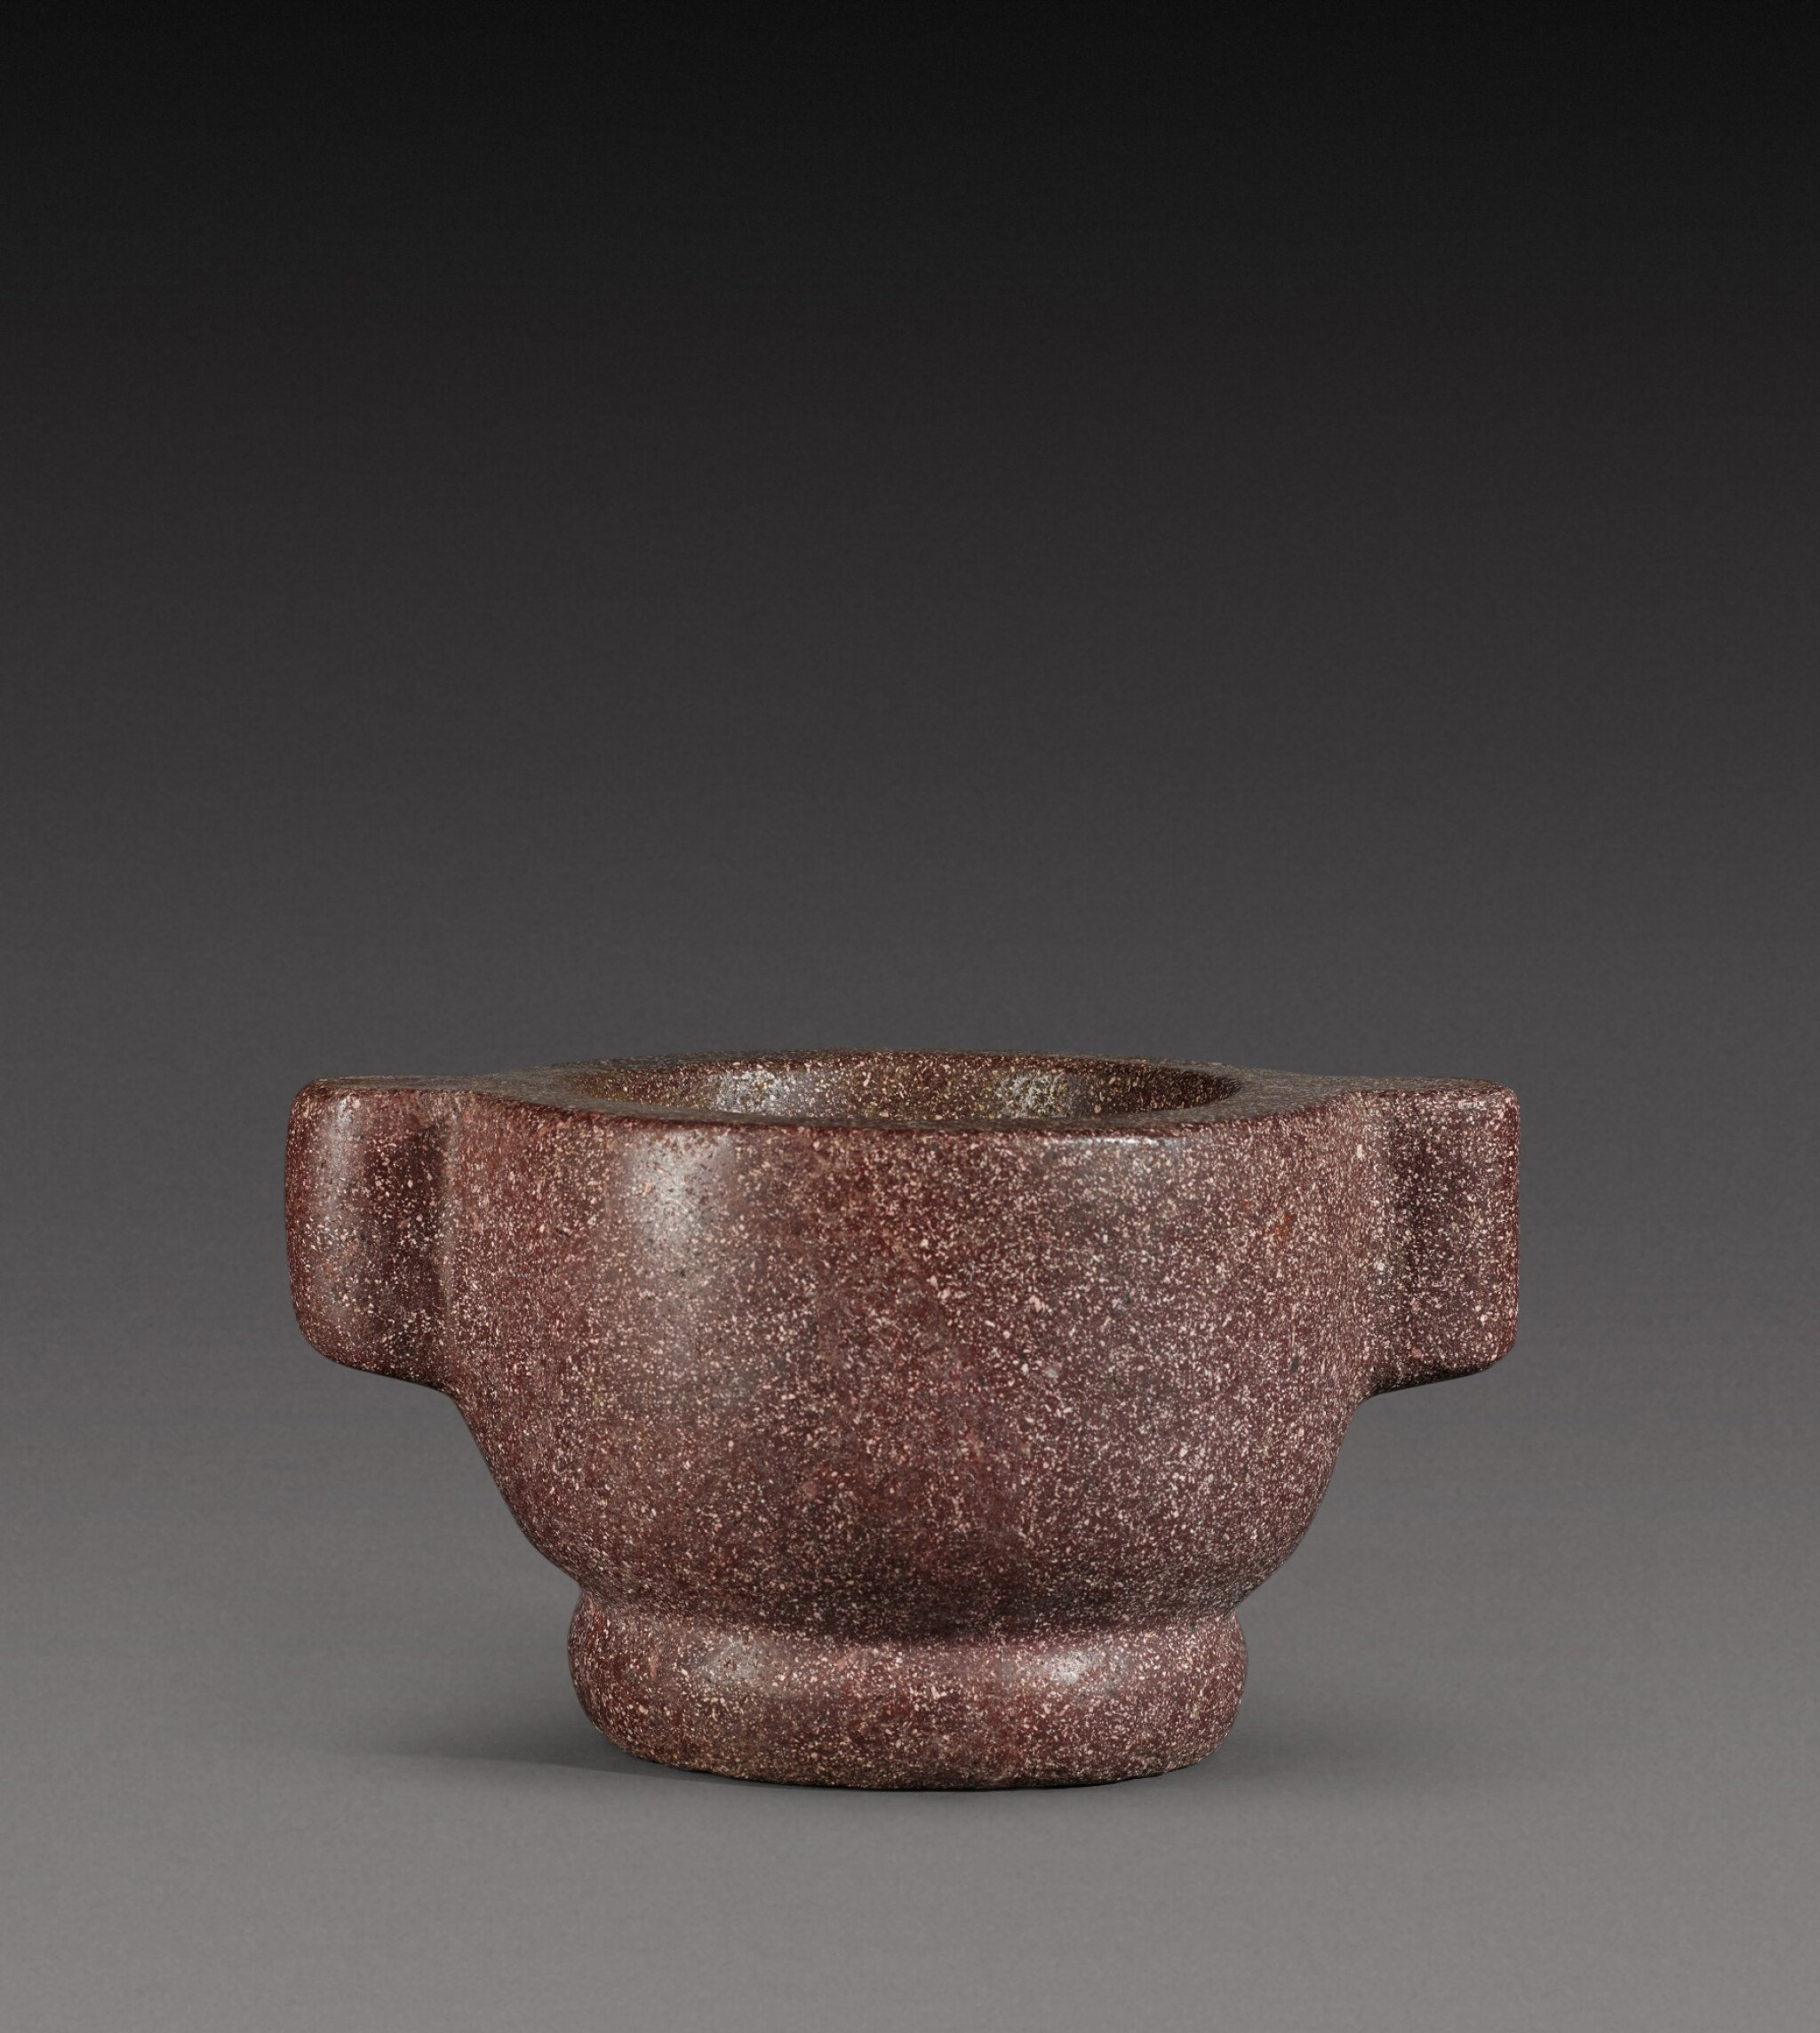 View 1 of Lot 138. Italian, probably 16th century | Mortar.